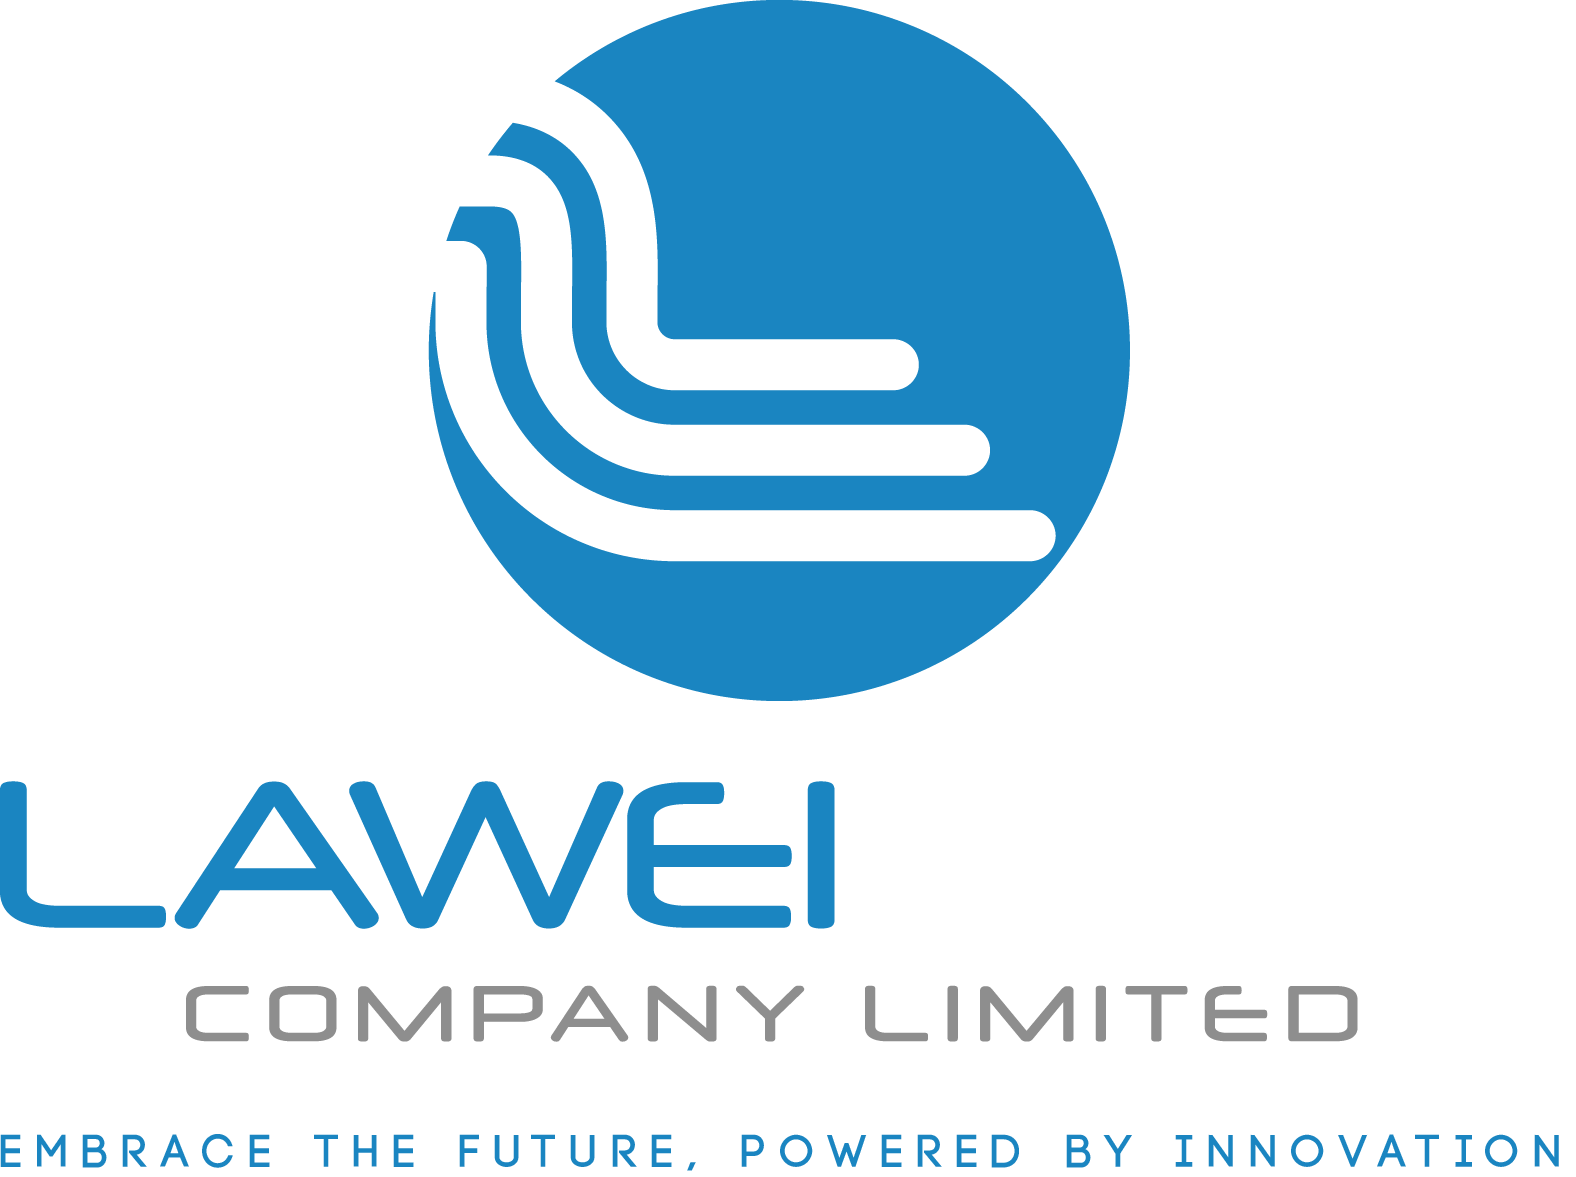 LAWEITECH, EMBRACE THE FUTURE, POWERED BY INNOVATION.